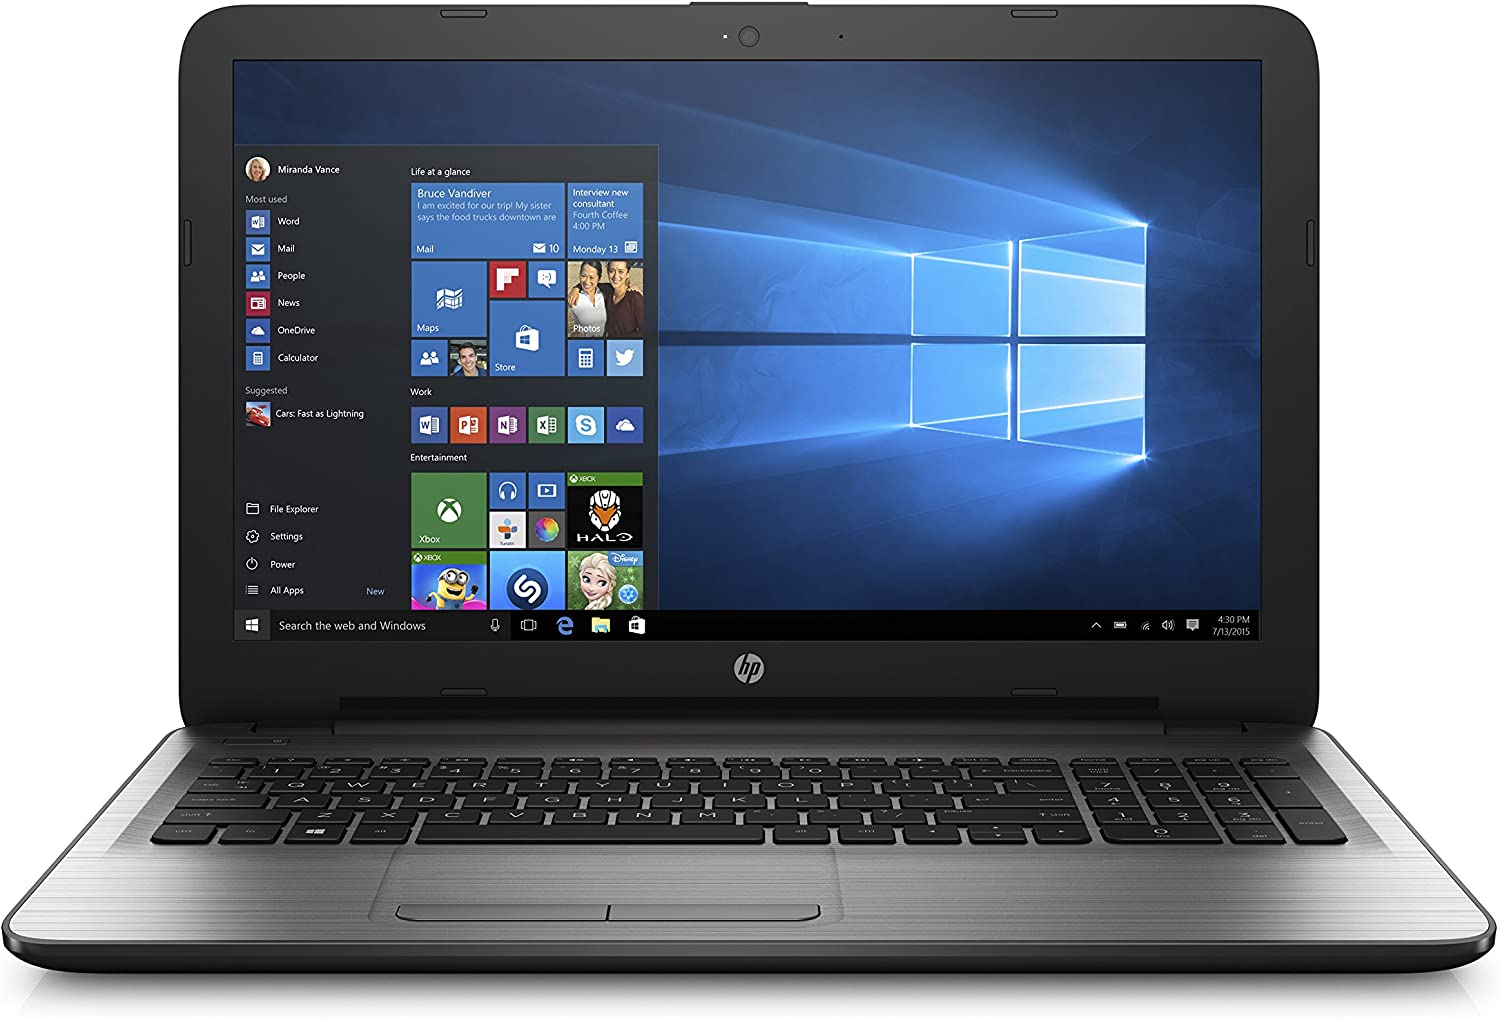 HP 15-ba040nr 15.6-Inch Notebook (AMD A10, 8 GB RAM, 1 TB HDD)